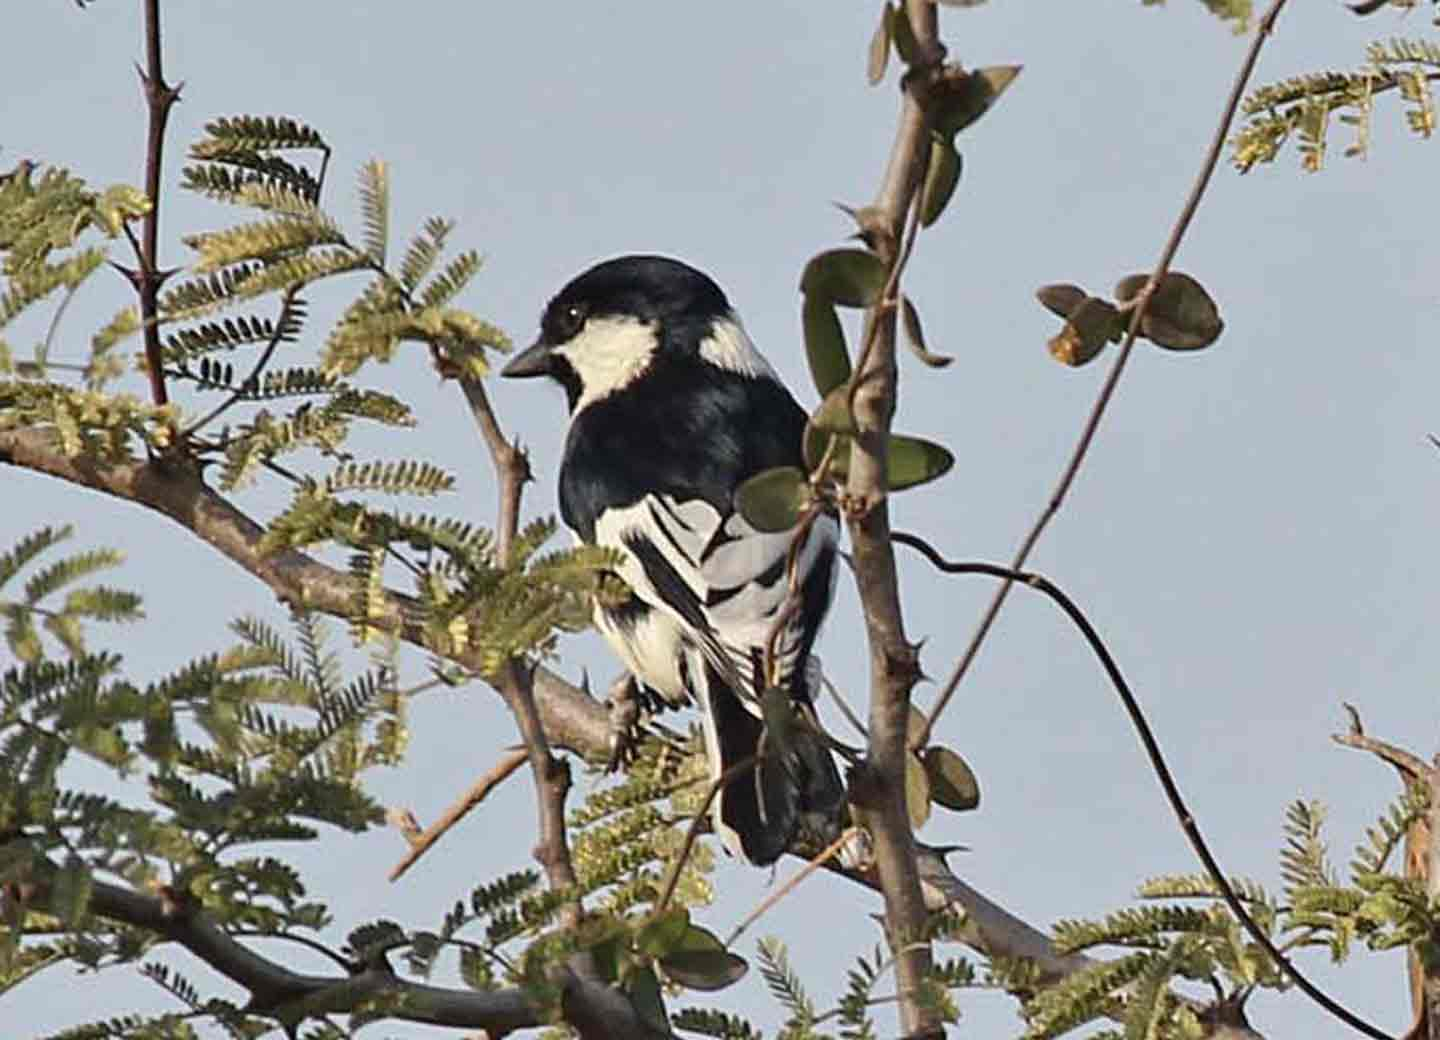 Gujarat's Iconic Birds (7 days) B407 - Wild About Travel